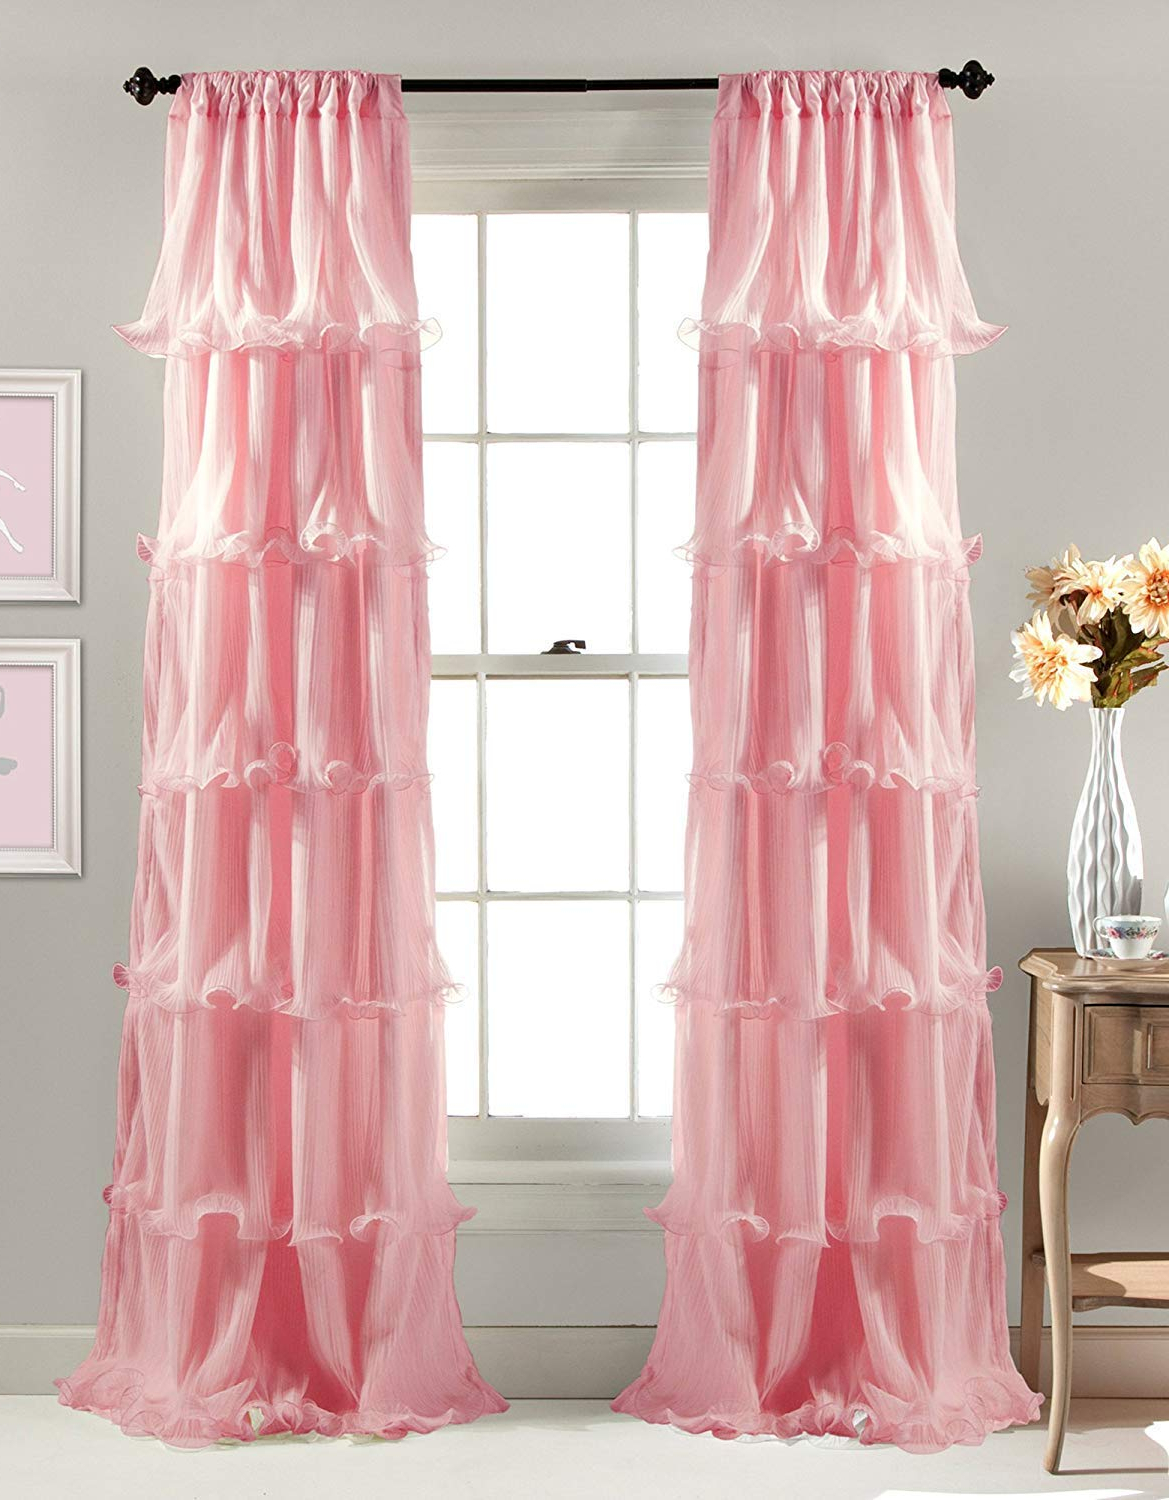 Linens And More 2 Panel Window Sheer Voile Vertical Ruffled Waterfall  Curtains84 Inches Long X 50 Inches Wide (Pink Ruffled) With Regard To Well Known Sheer Voile Waterfall Ruffled Tier Single Curtain Panels (View 6 of 20)